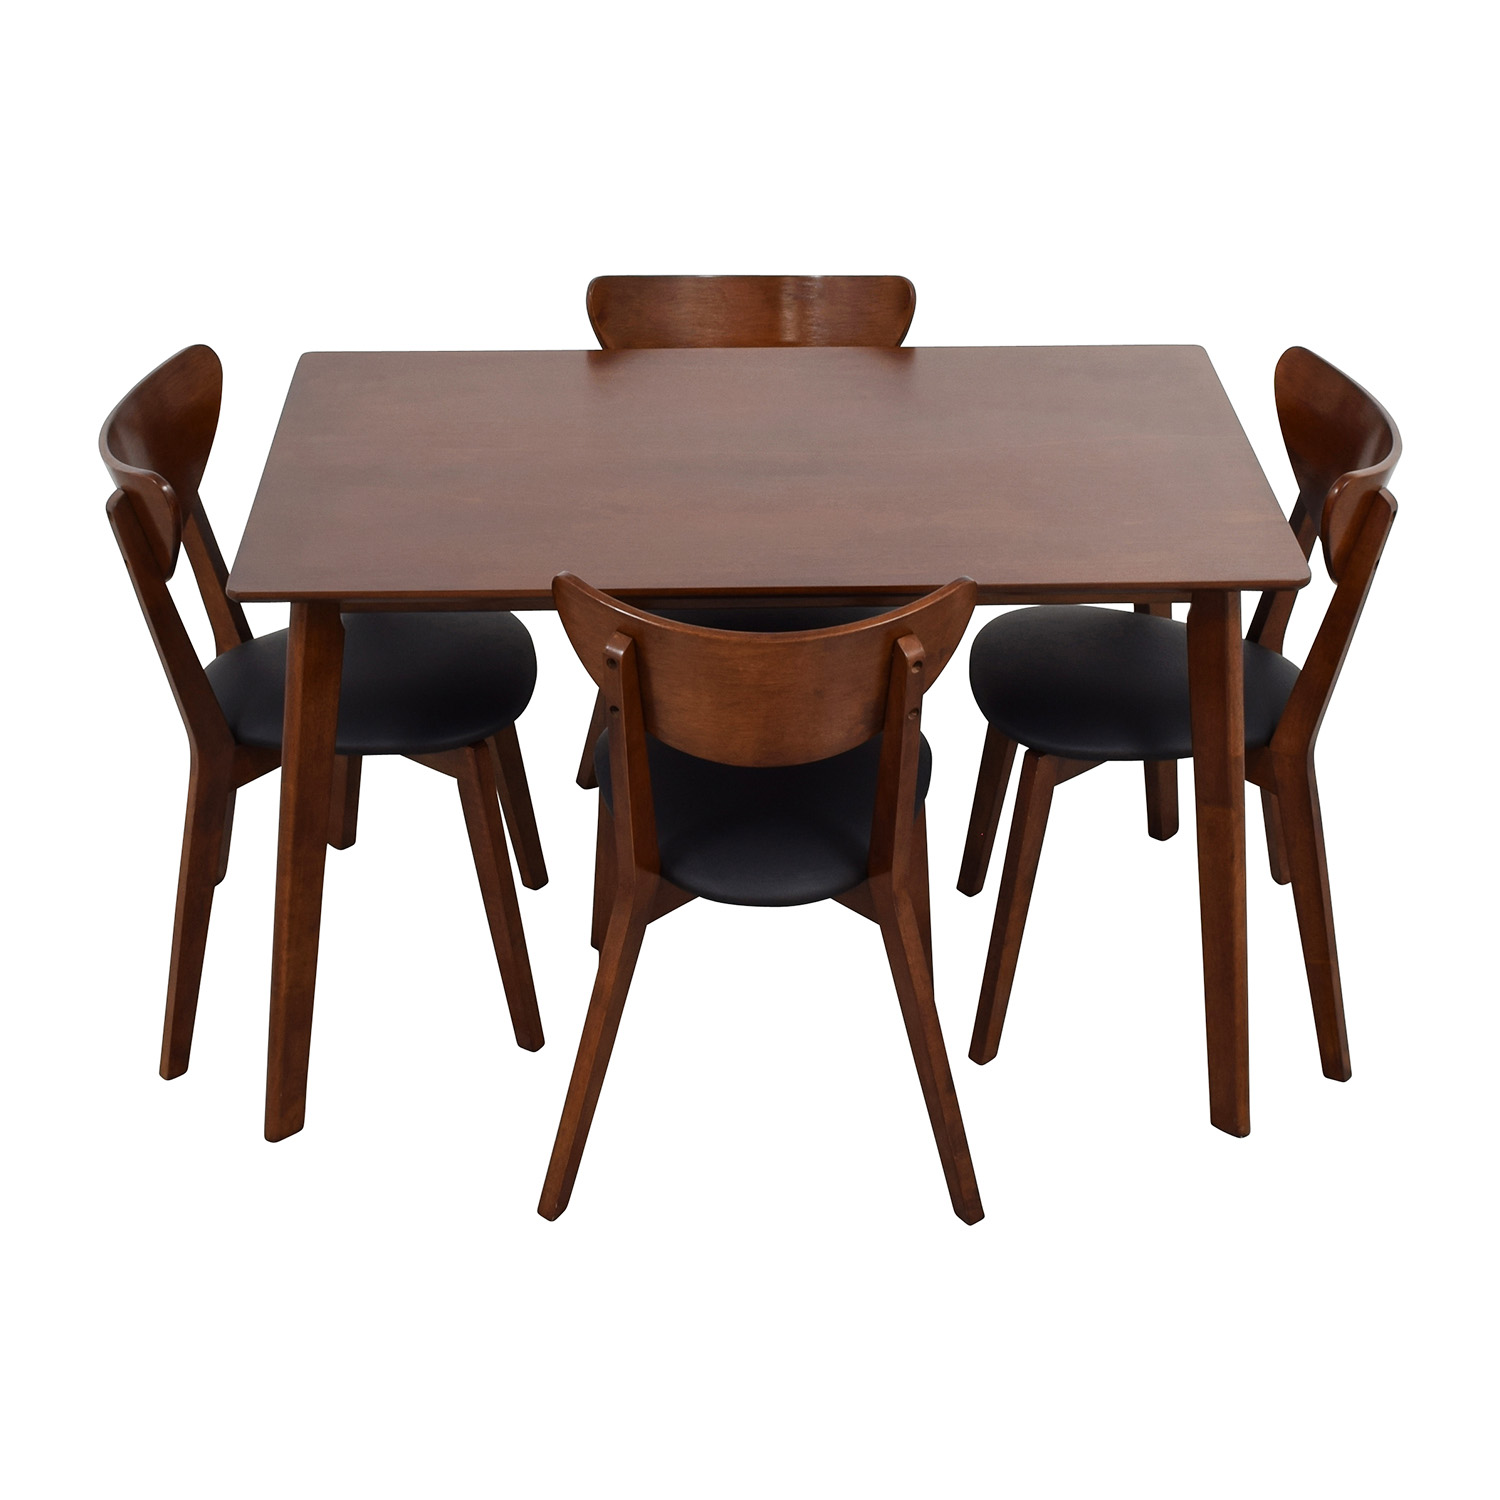 suede dining table chairs eames lcw chair 35 off wholesale interiors brown set with